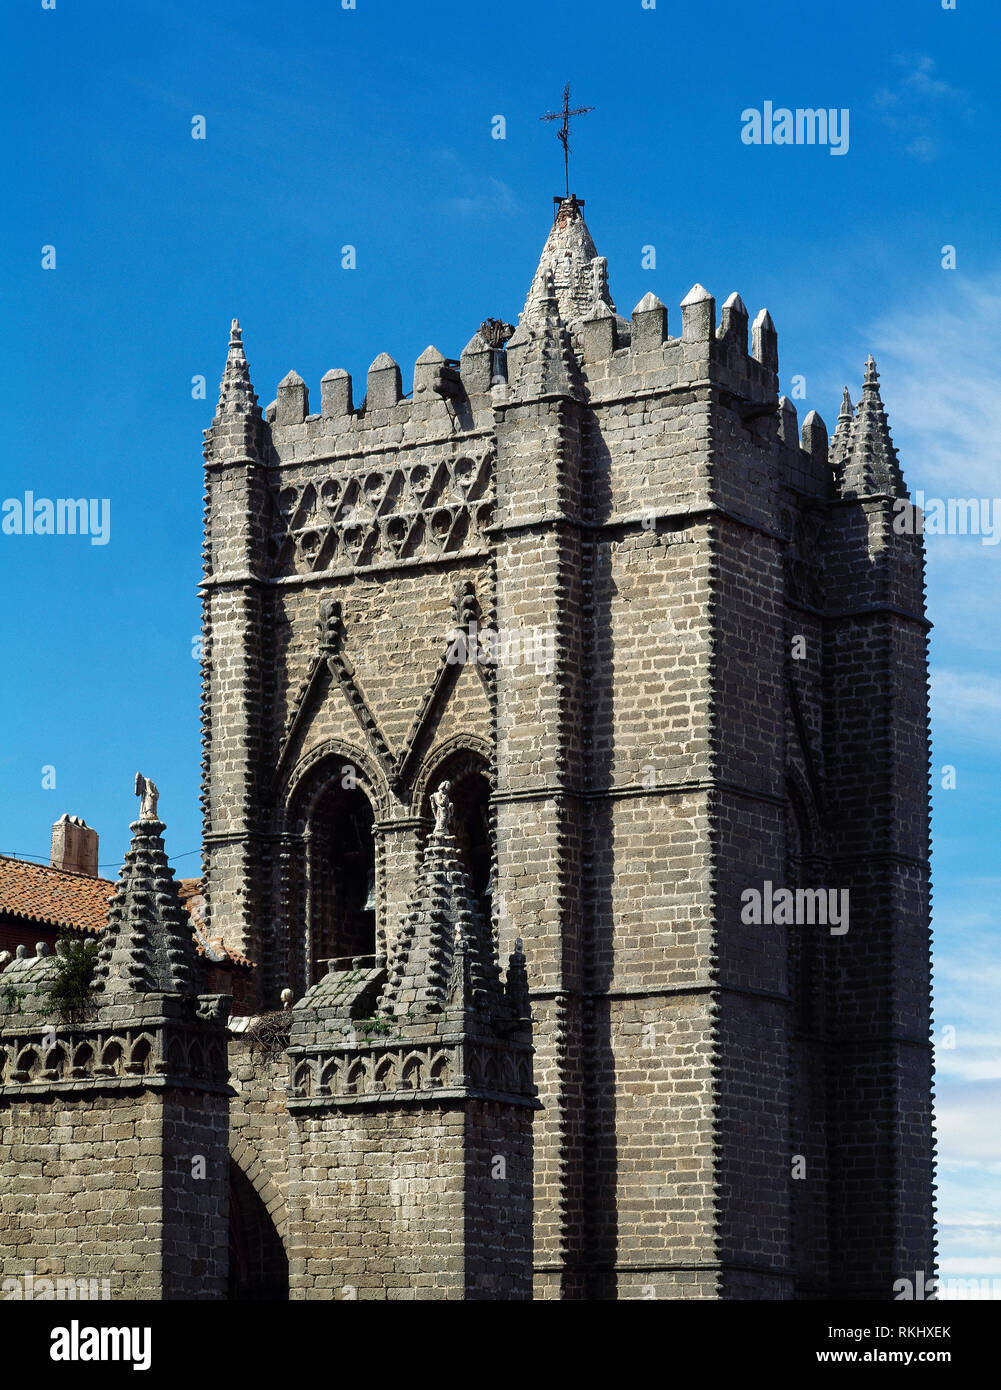 Spain, Castile and Leon, Avila. Cathedral of St. Salvador. Catholic church. Its construction was started in the 12th century in Romanesque style and concluded in the 14th century in Gothic style. Architectural detail. Bell tower. Stock Photo